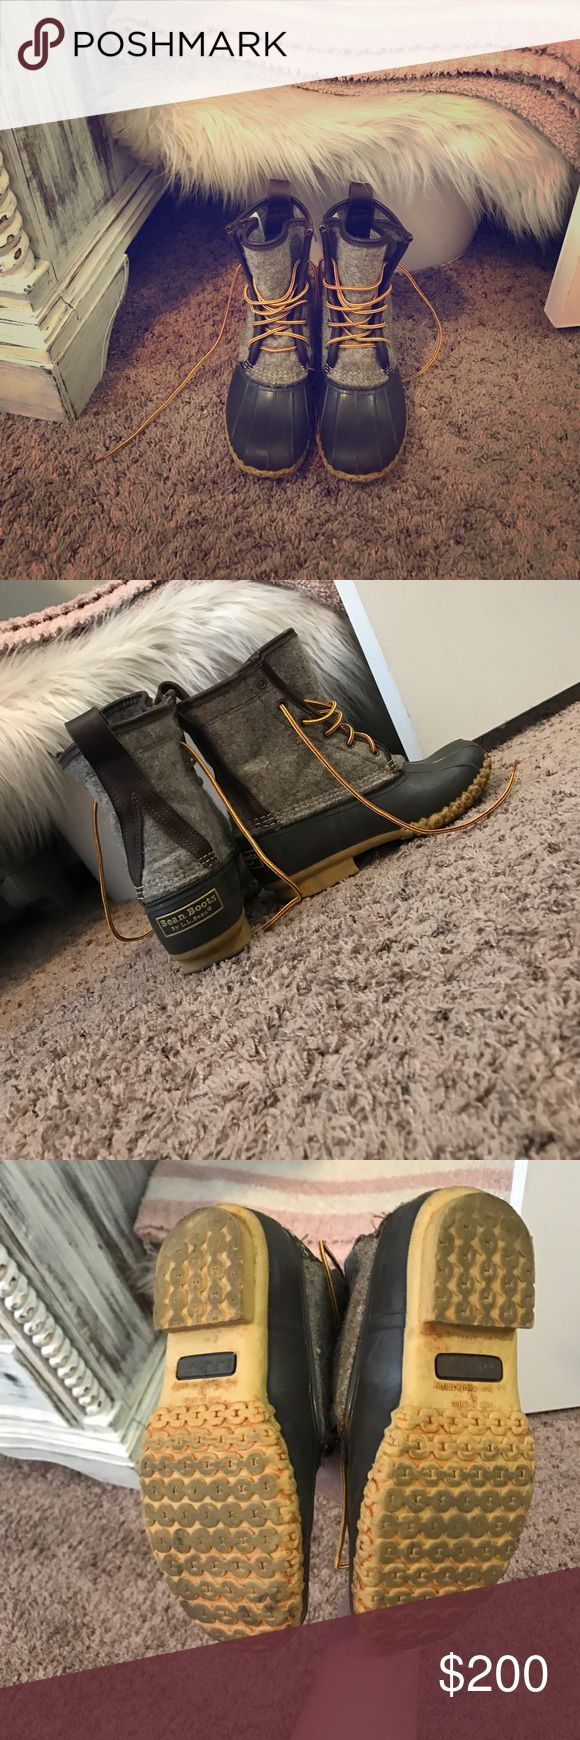 L. L. Bean boots limited edition LL bean duck boots size 7! I wear a size 8 regular so these will fit both a 7 and 8 women's shoe size! Love these and have held on to them for a little over a year now only having worn once (mud on bottom will be cleaned off) but they seem to be highly sought after so I'm trying to let go since I have 2 other pairs! LL bean  Shoes Winter & Rain Boots